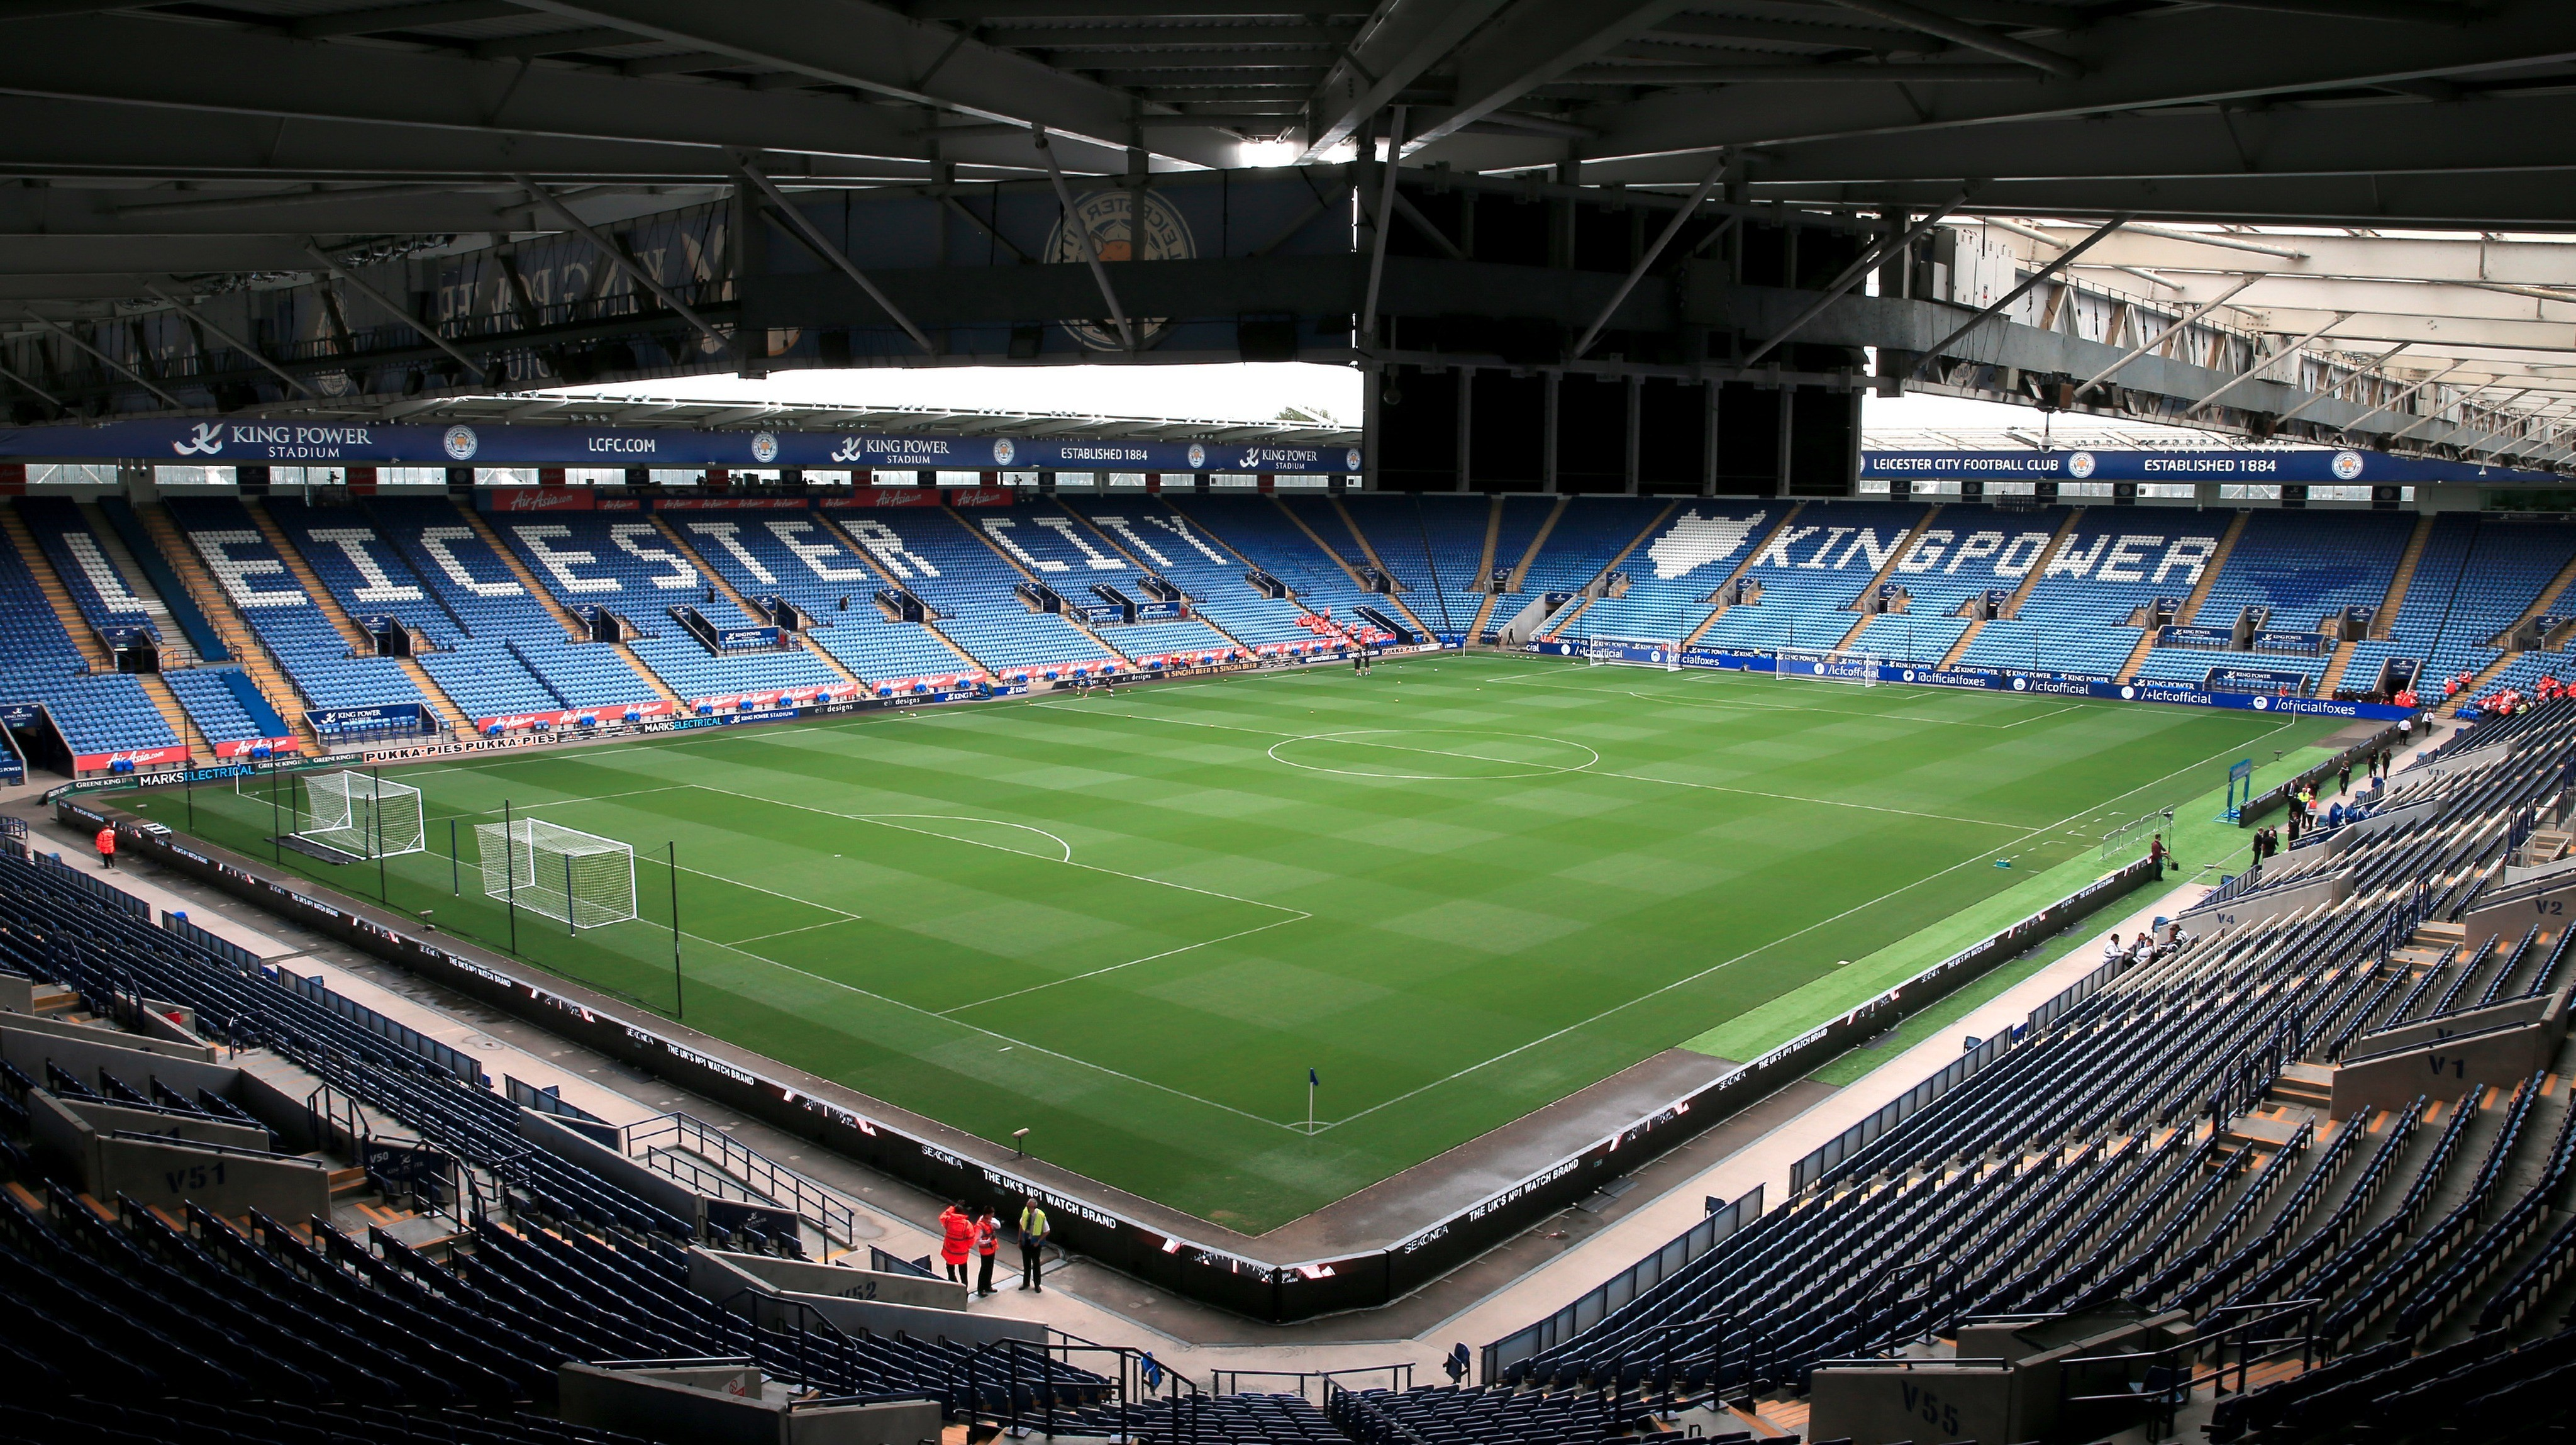 King Power stadion